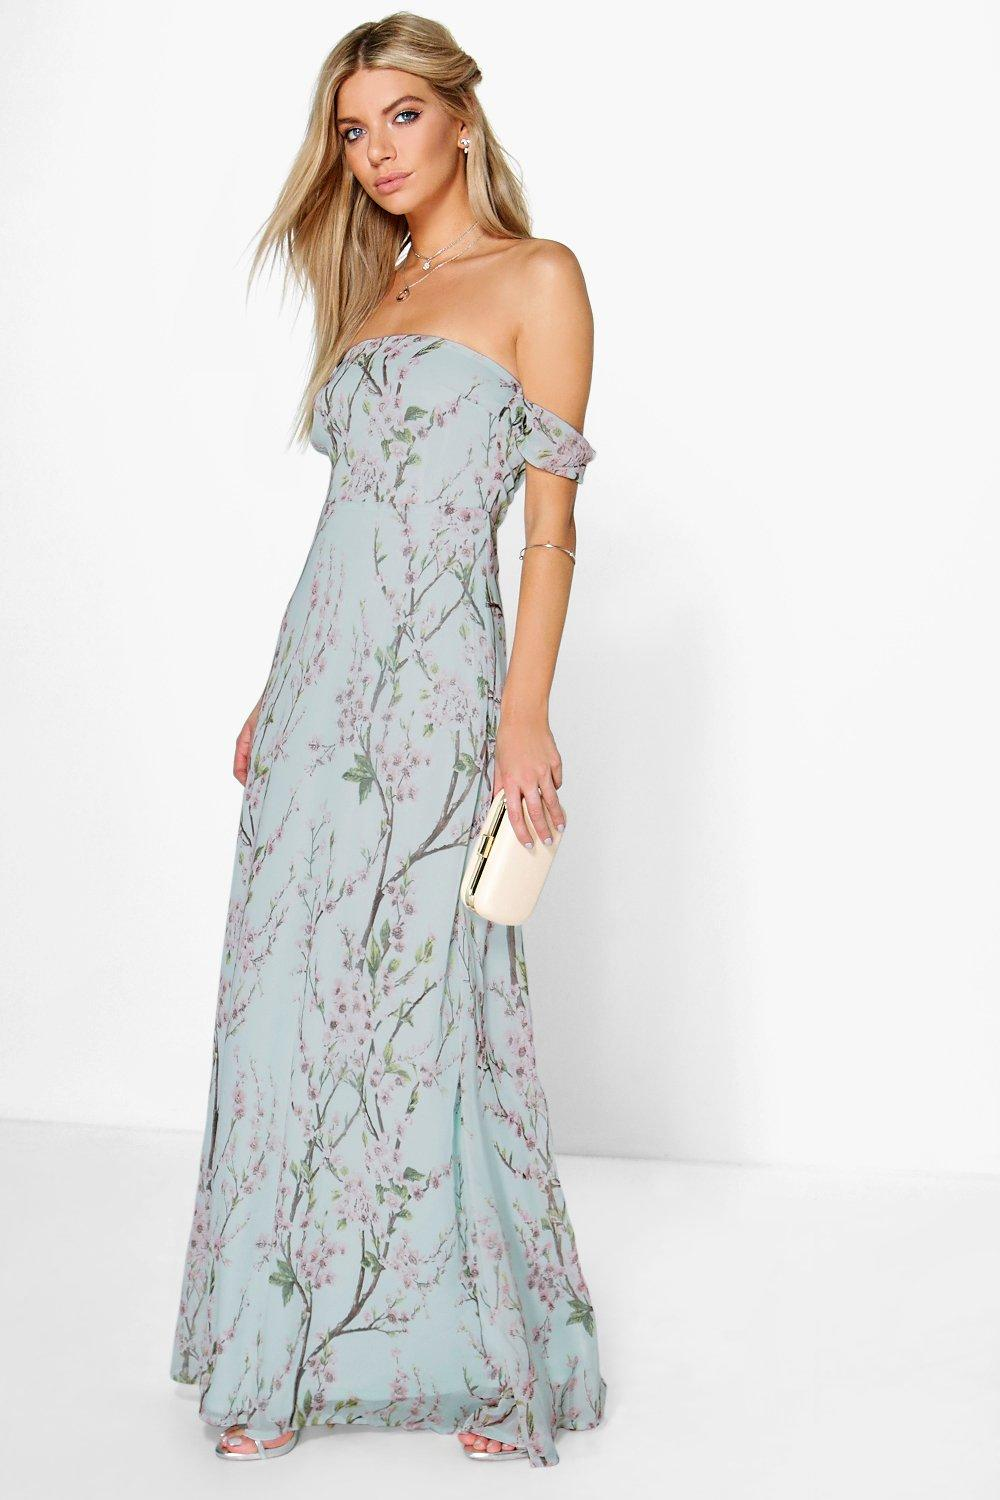 maxi dress hover to zoom JNPPQGN